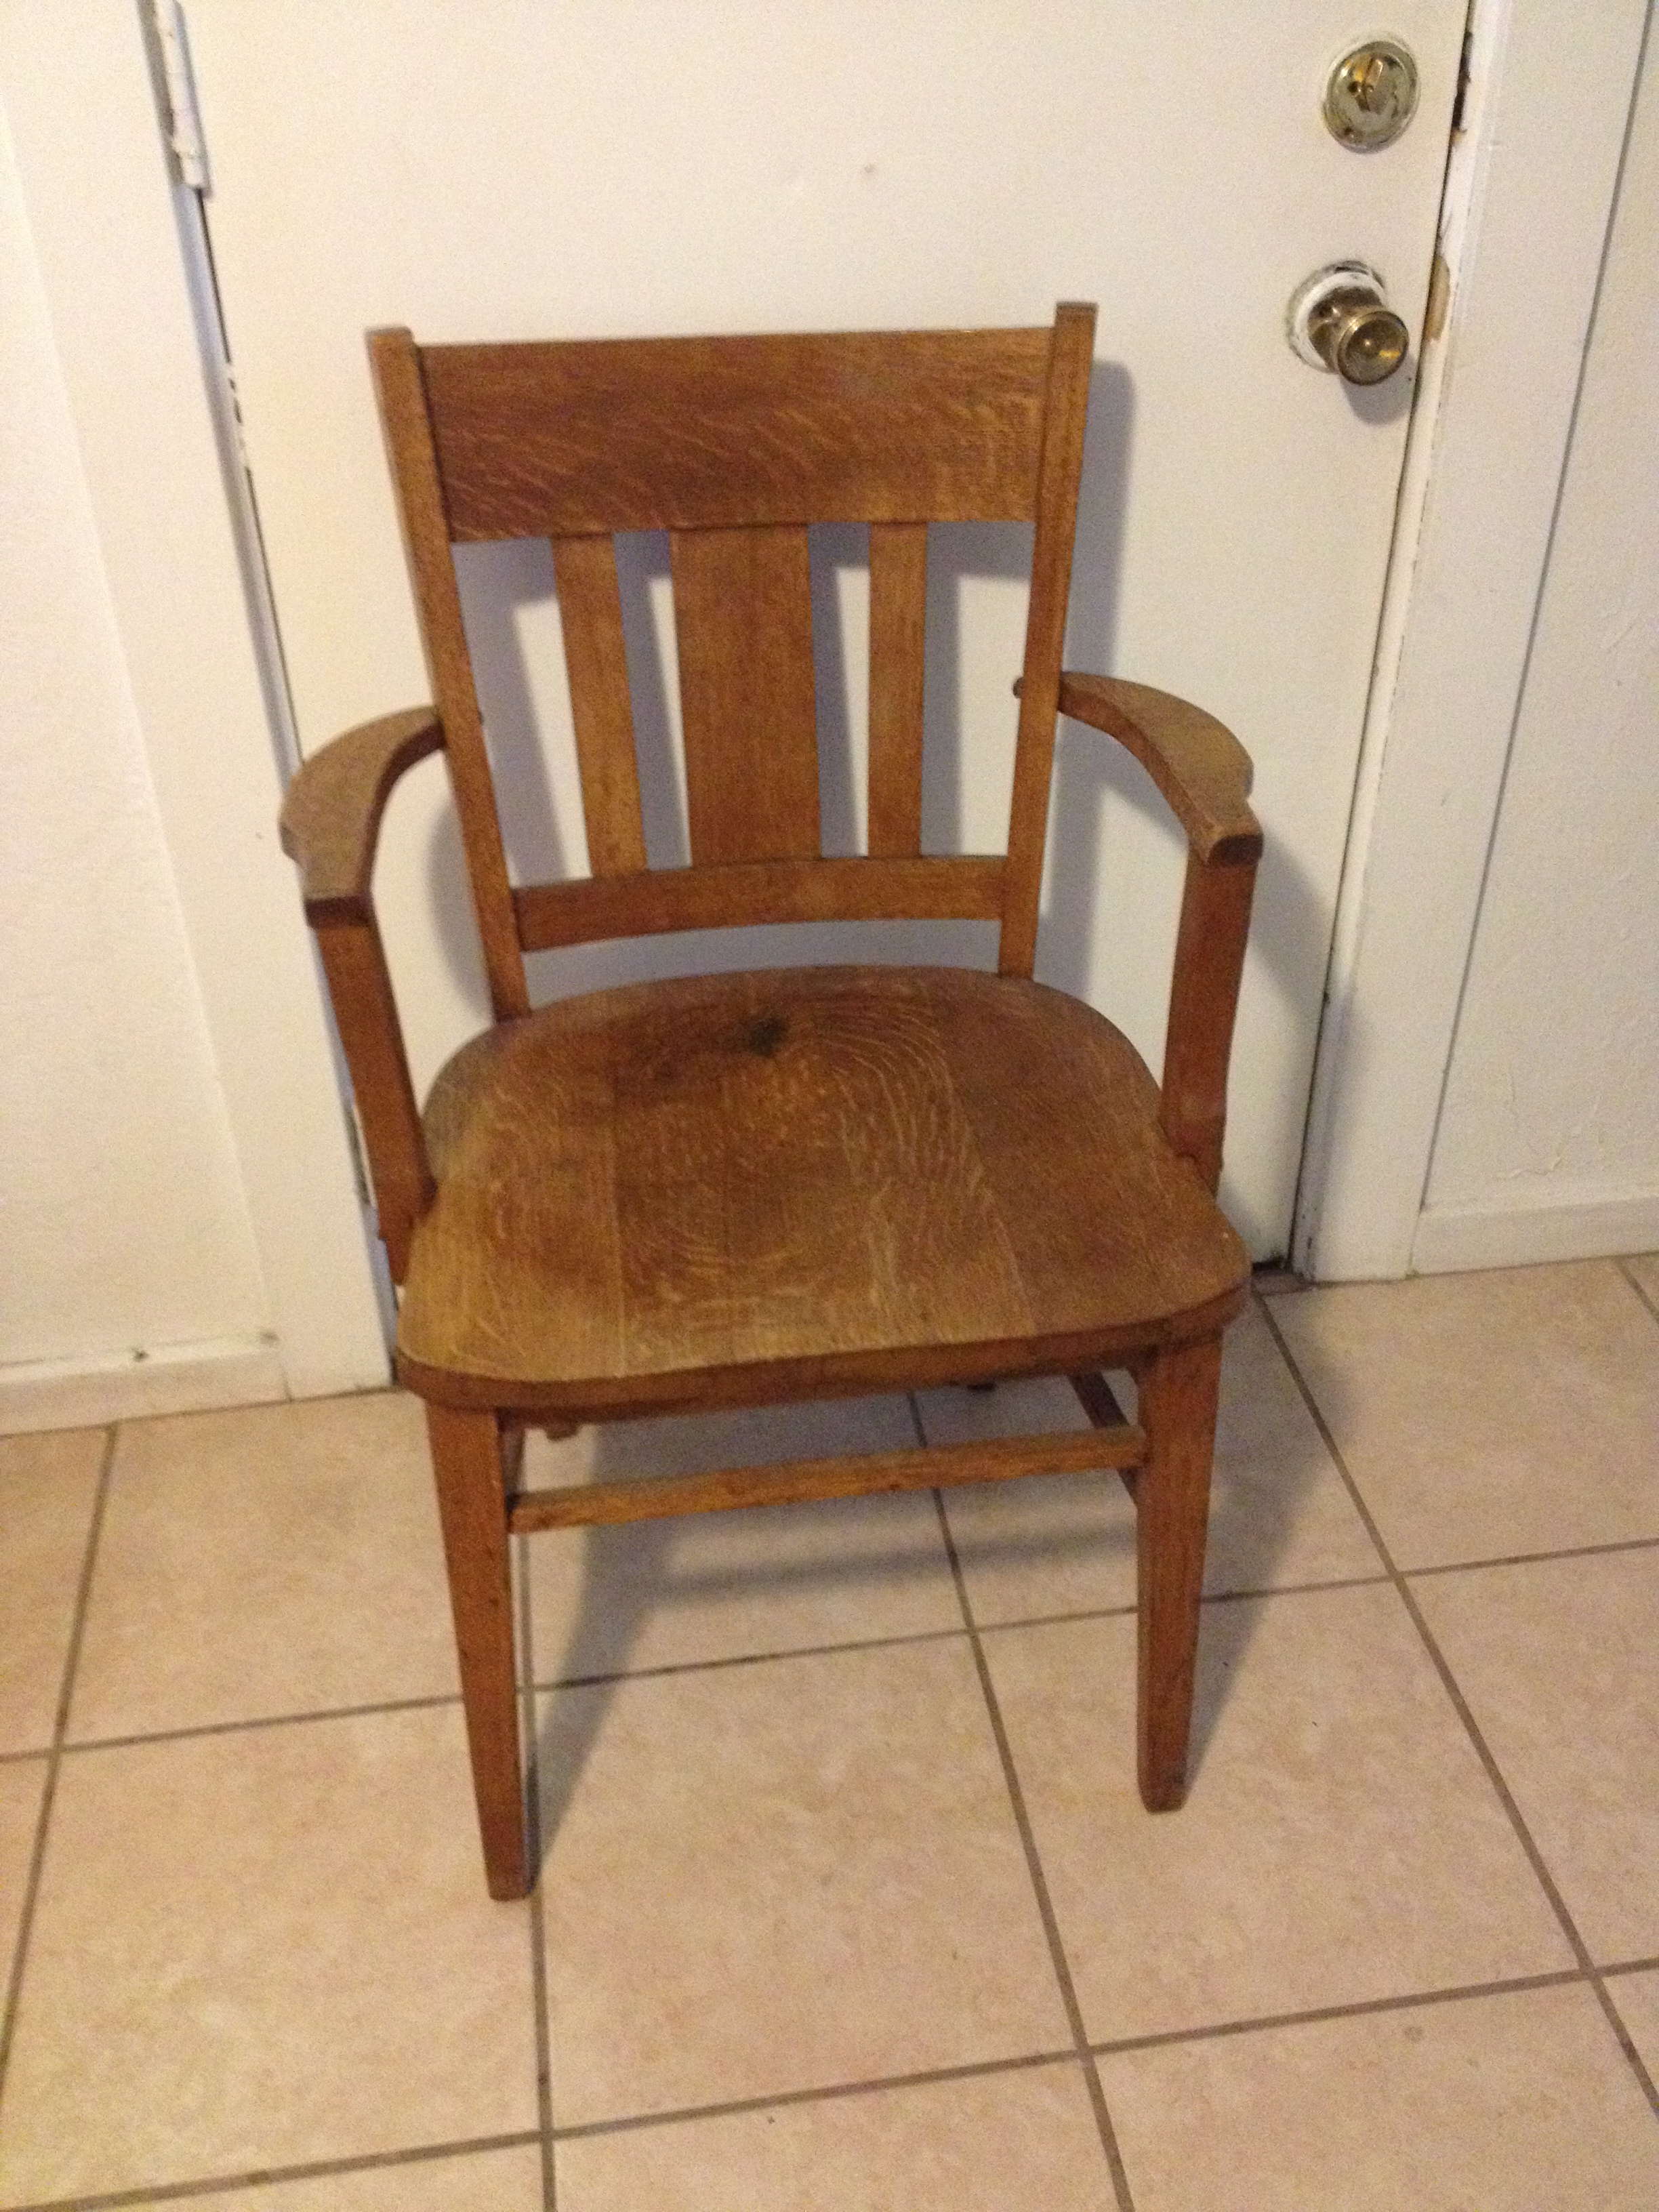 murphy chair company collapsible wooden plans antique appraisal instappraisal